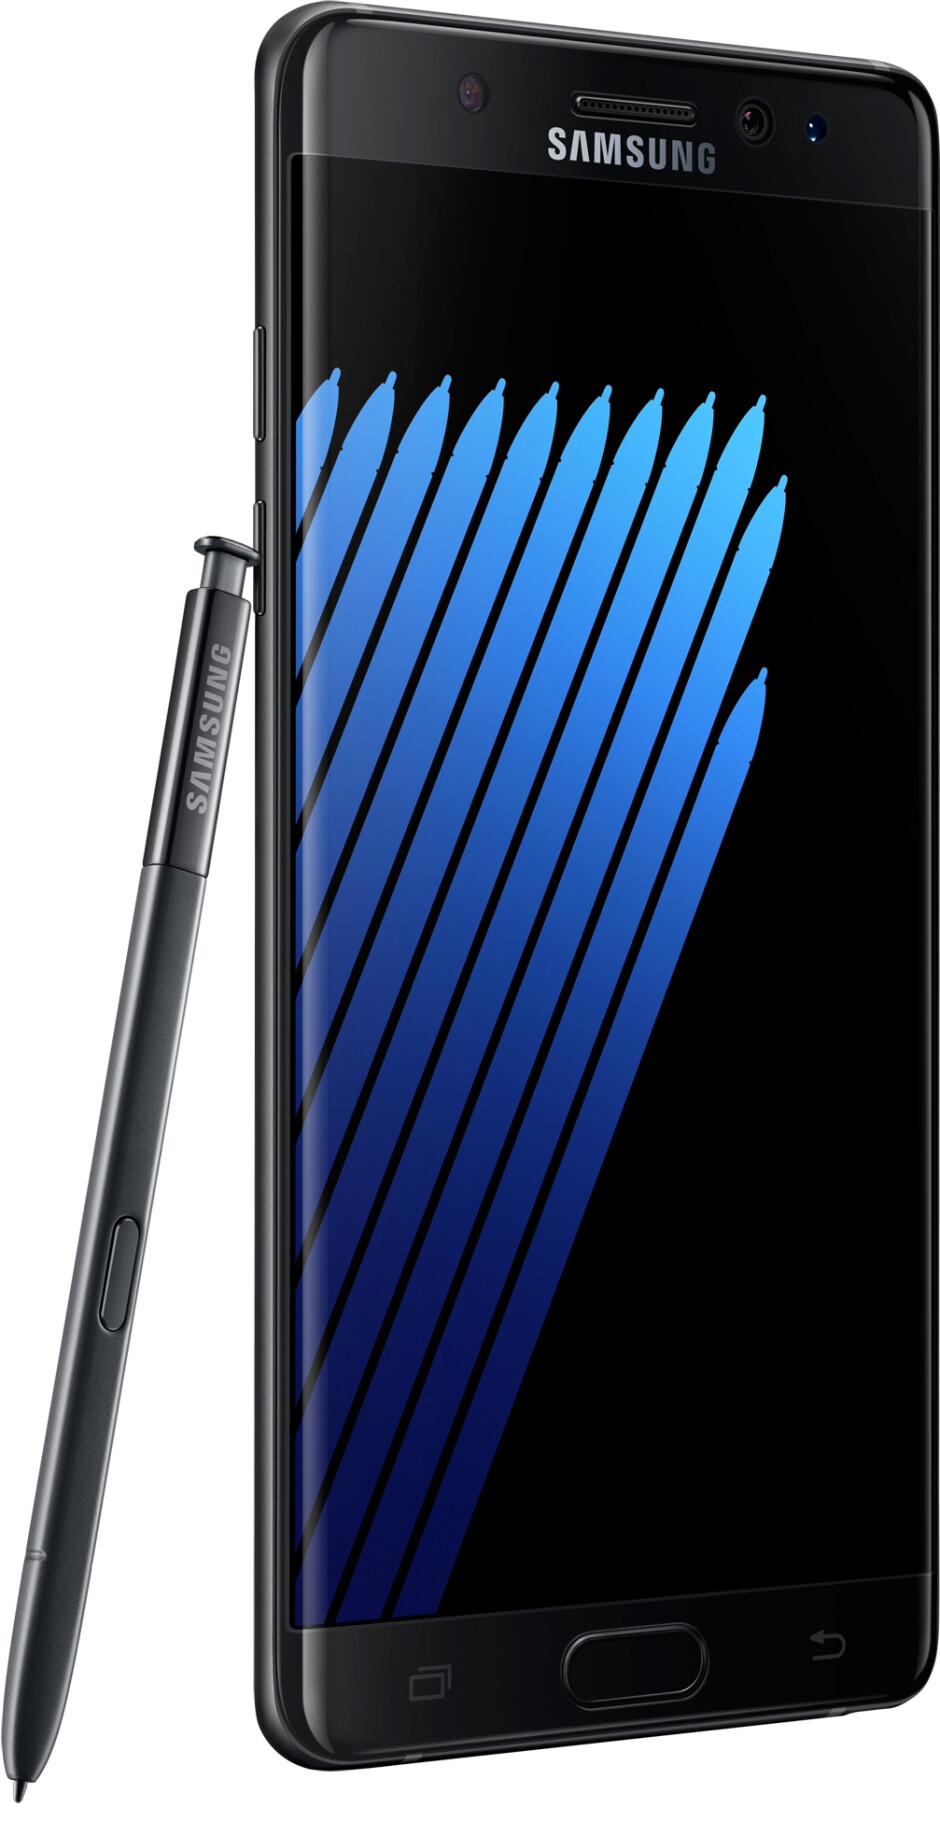 The Galaxy Note 7 is narrower and more symmetrical - Samsung Galaxy Note 7 - specs review